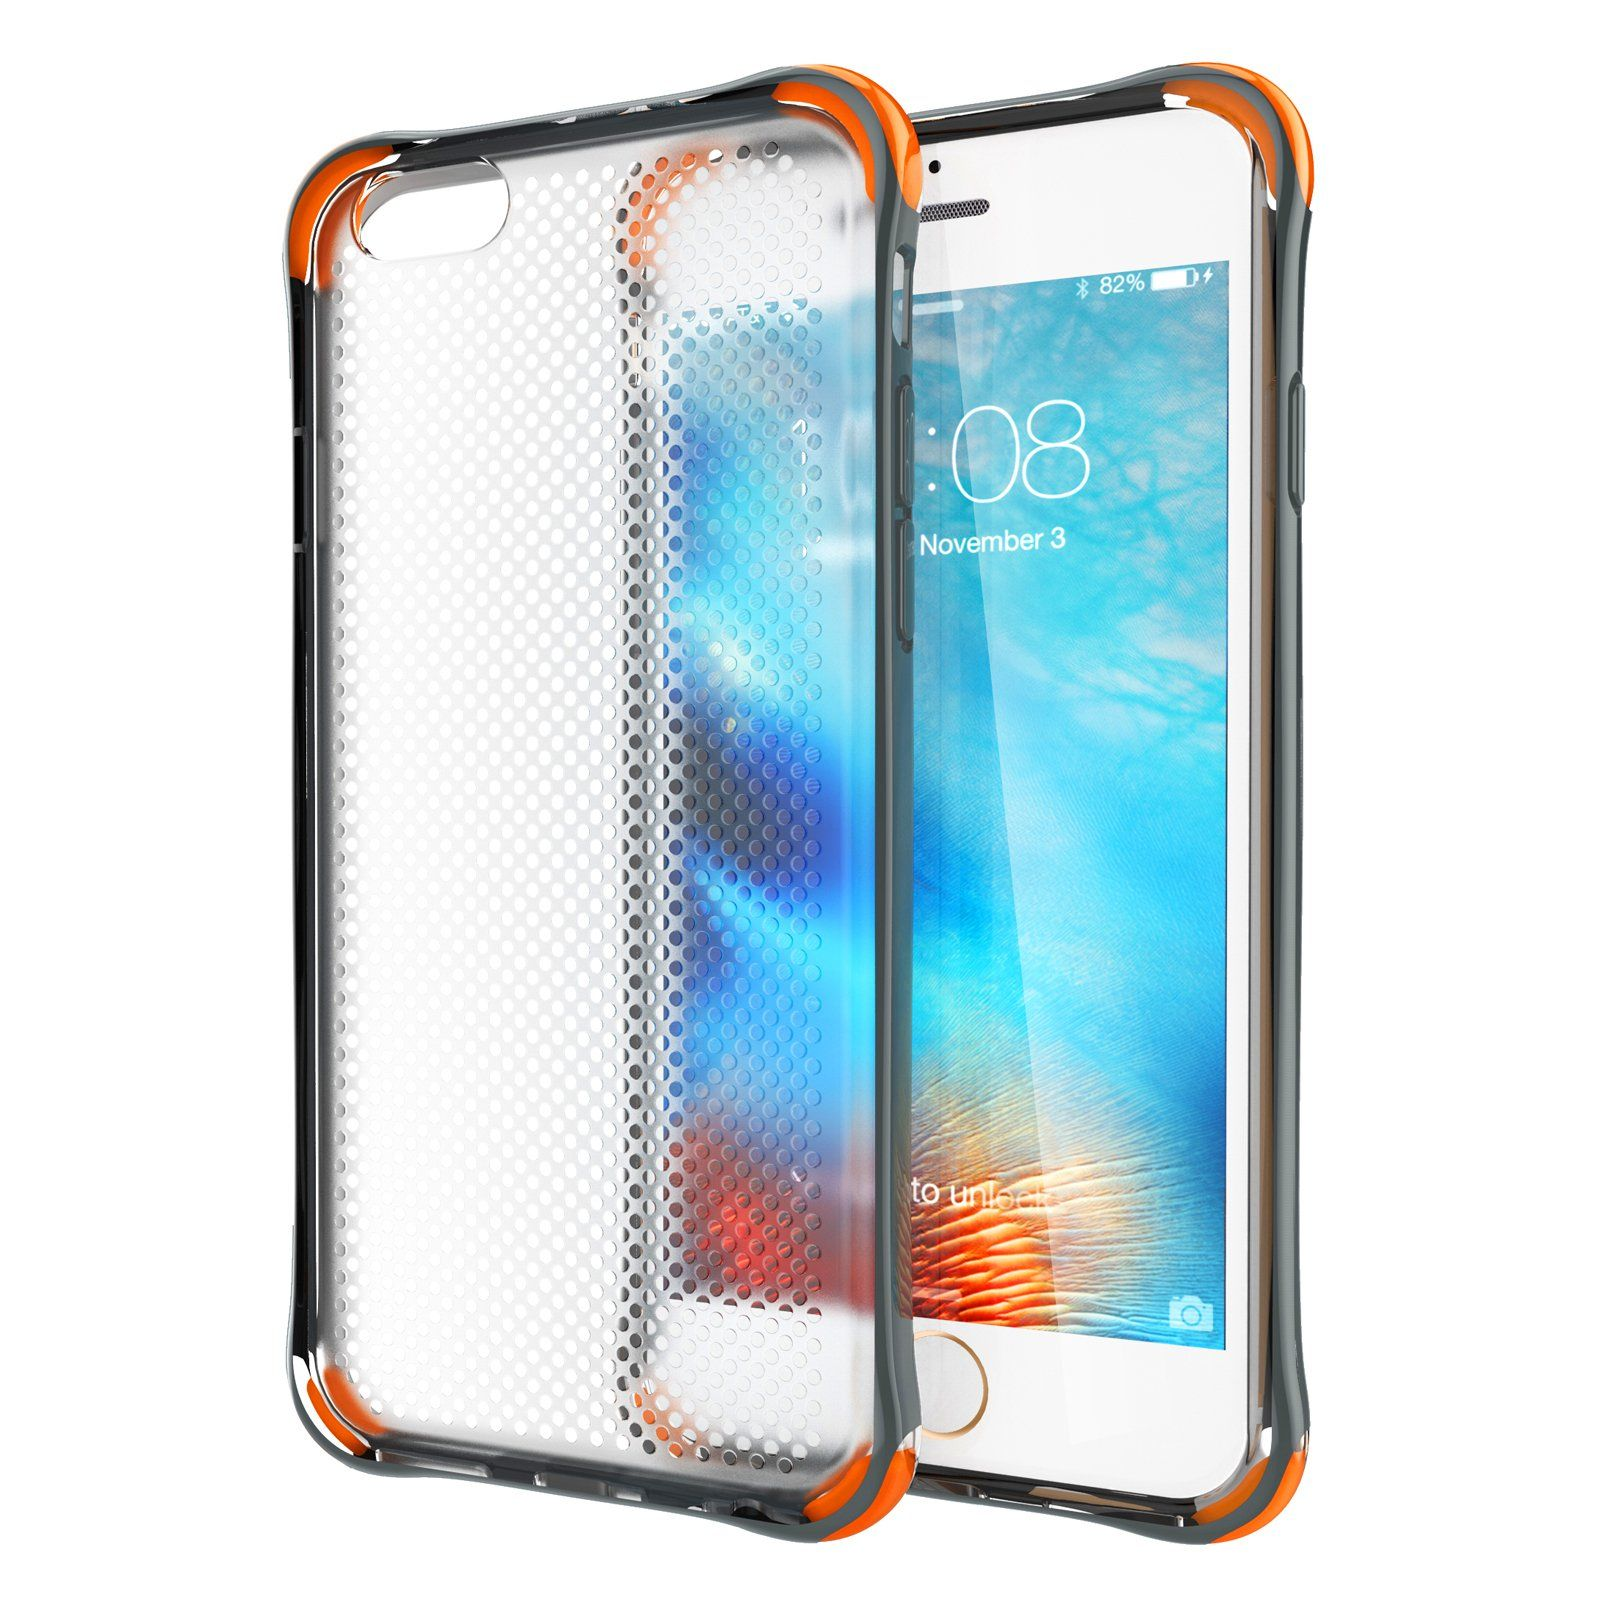 iPhone 6S Case, Tekcoo [Tair Series] iPhone 6 / 6S (4.7